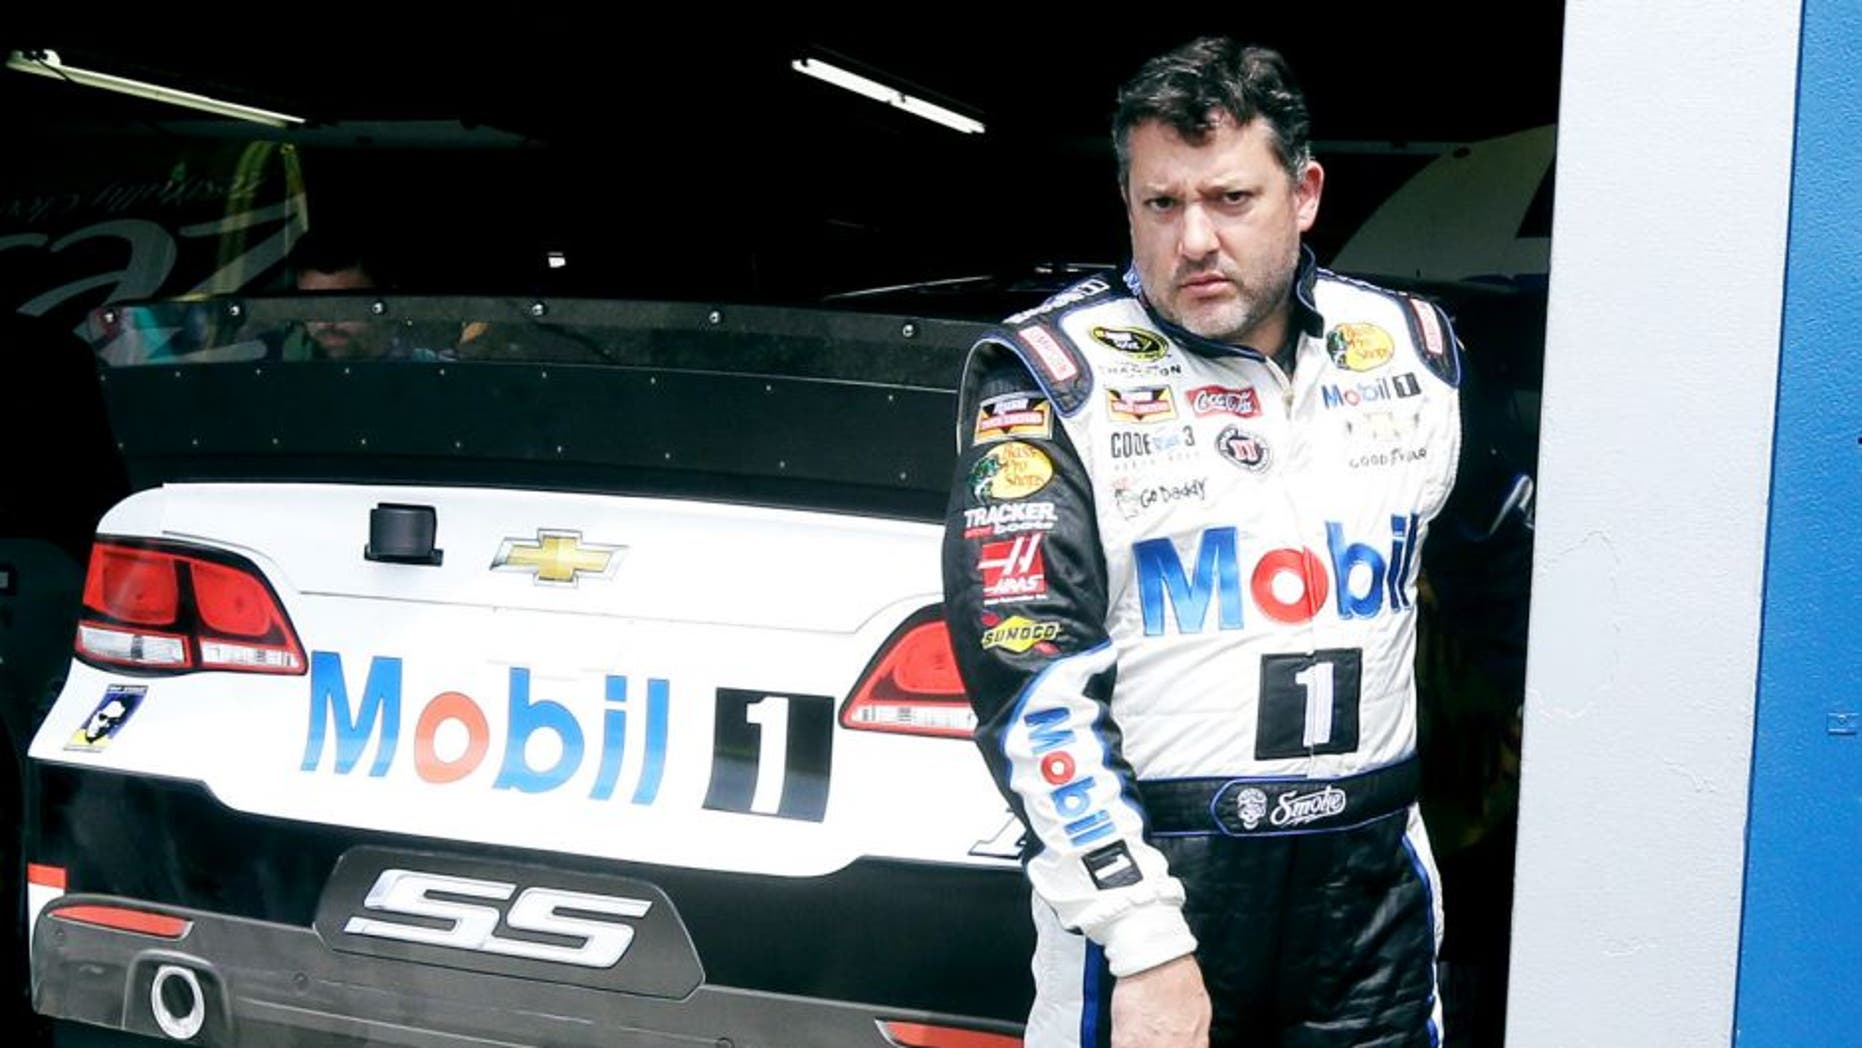 Tony Stewart leaves the garage after a practice session Friday, Aug. 14, 2015, for Sunday's NASCAR Sprint Cup series auto race at Michigan International Speedway in Brooklyn, Mich. (AP Photo/Carlos Osorio)